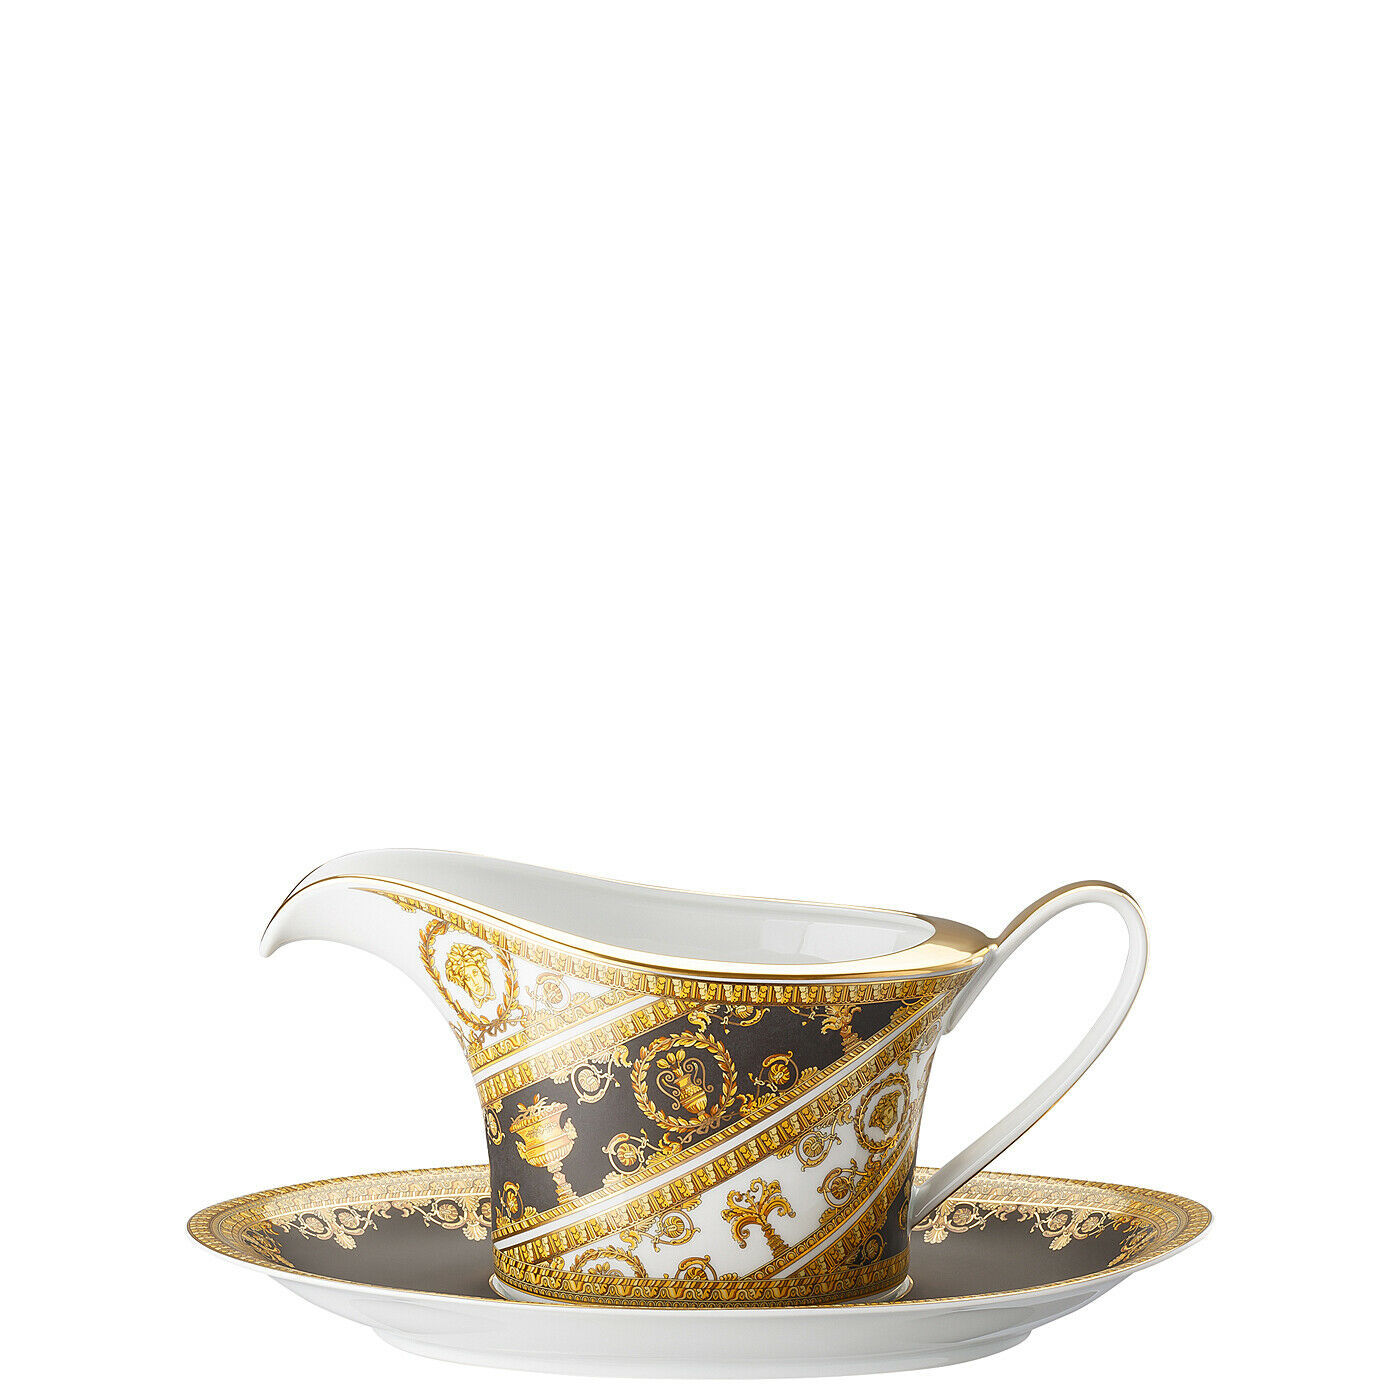 Primary image for Versace I Love Baroque Sauce-Boat 2 pcs. Porcelain Made in Italy